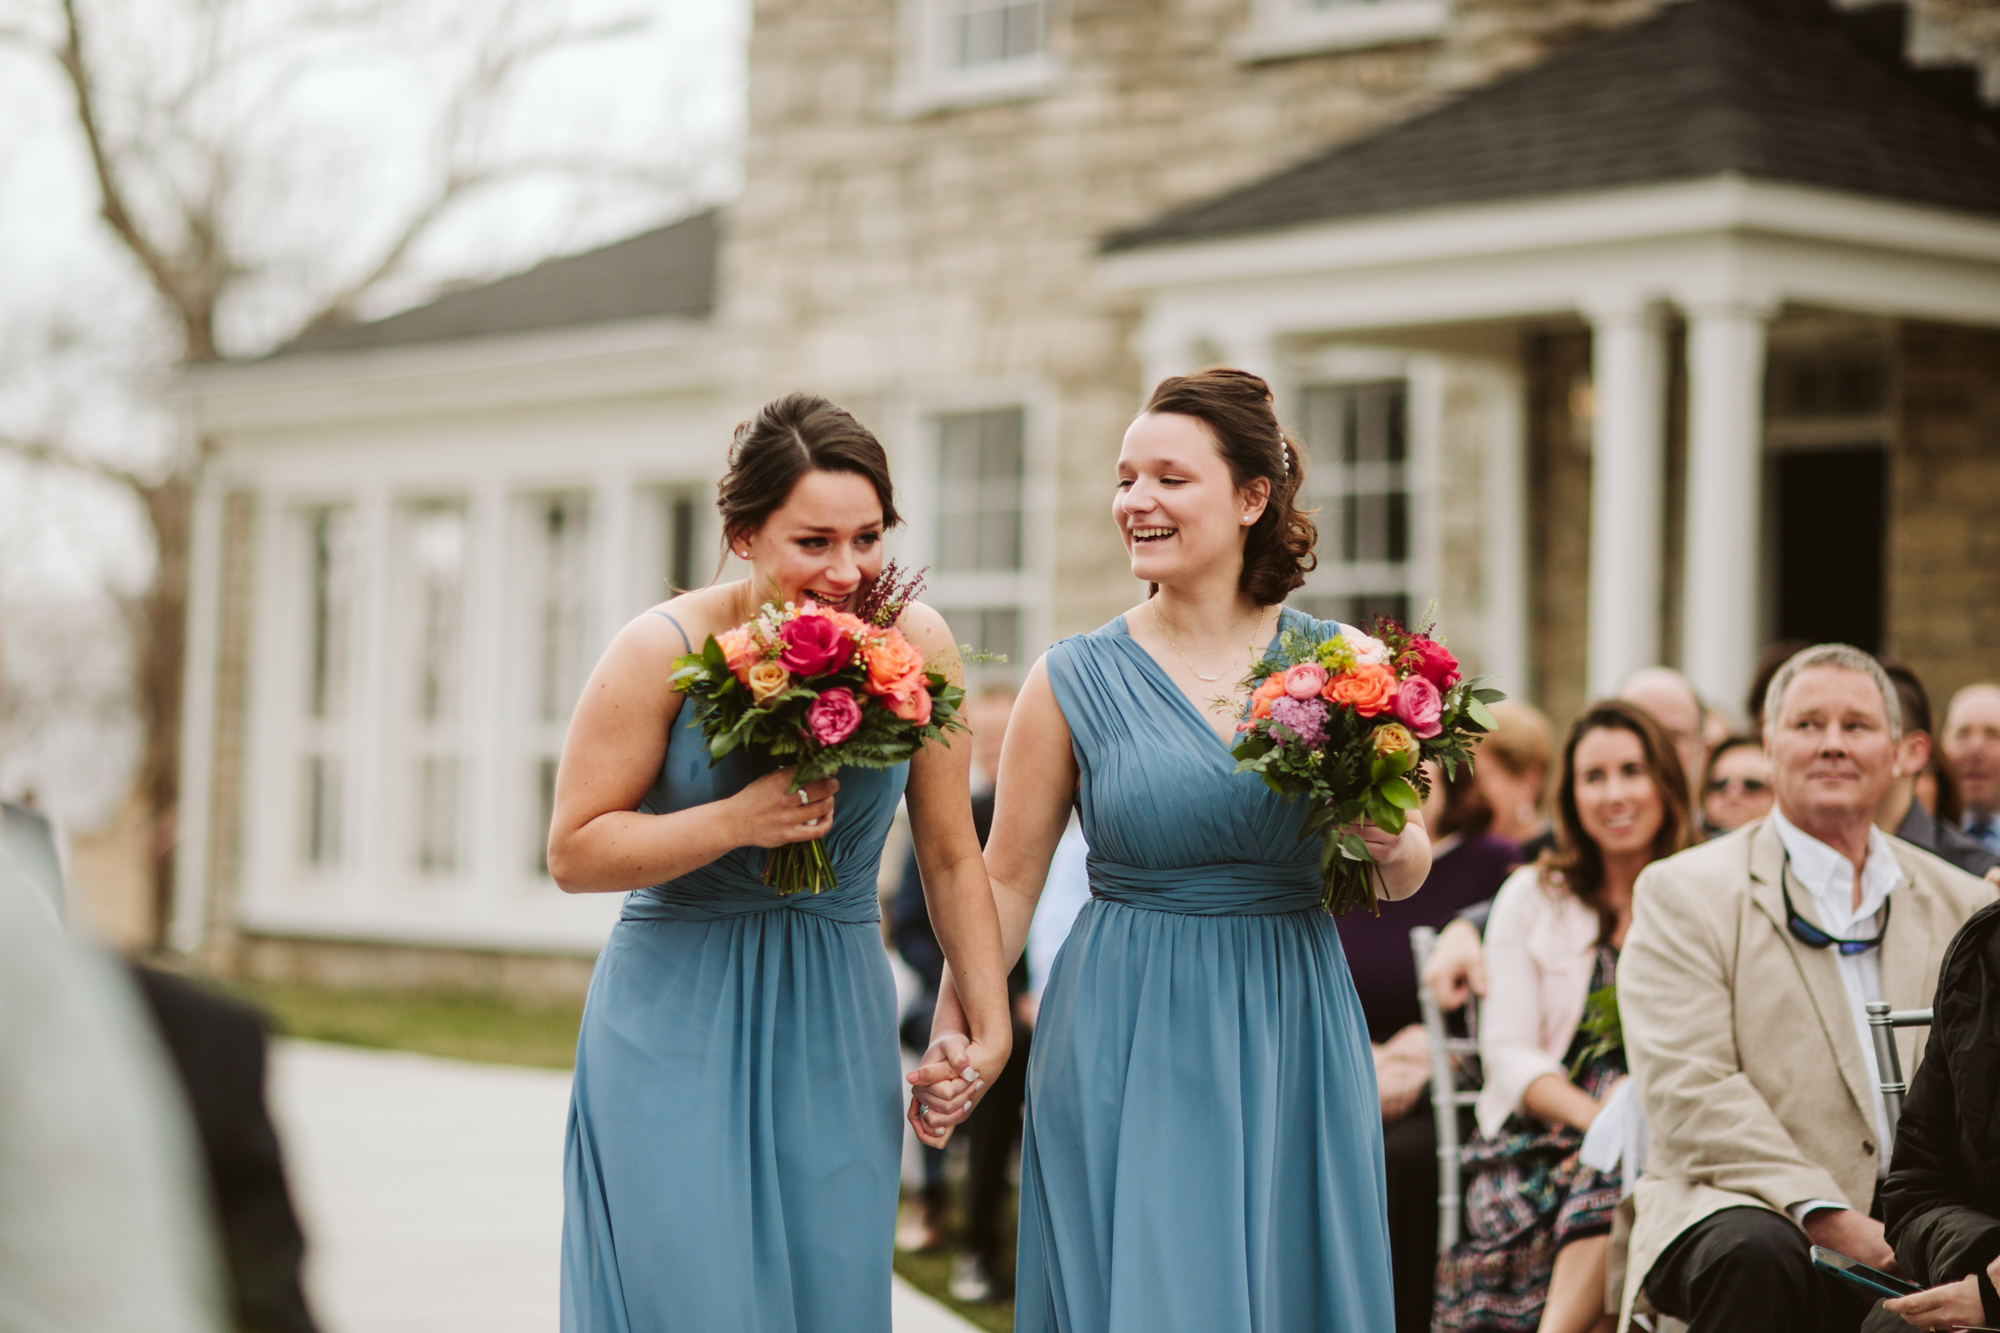 Bridesmaids, the bride's sisters, tearing up as they walk down the aisle at the stone house of st charles